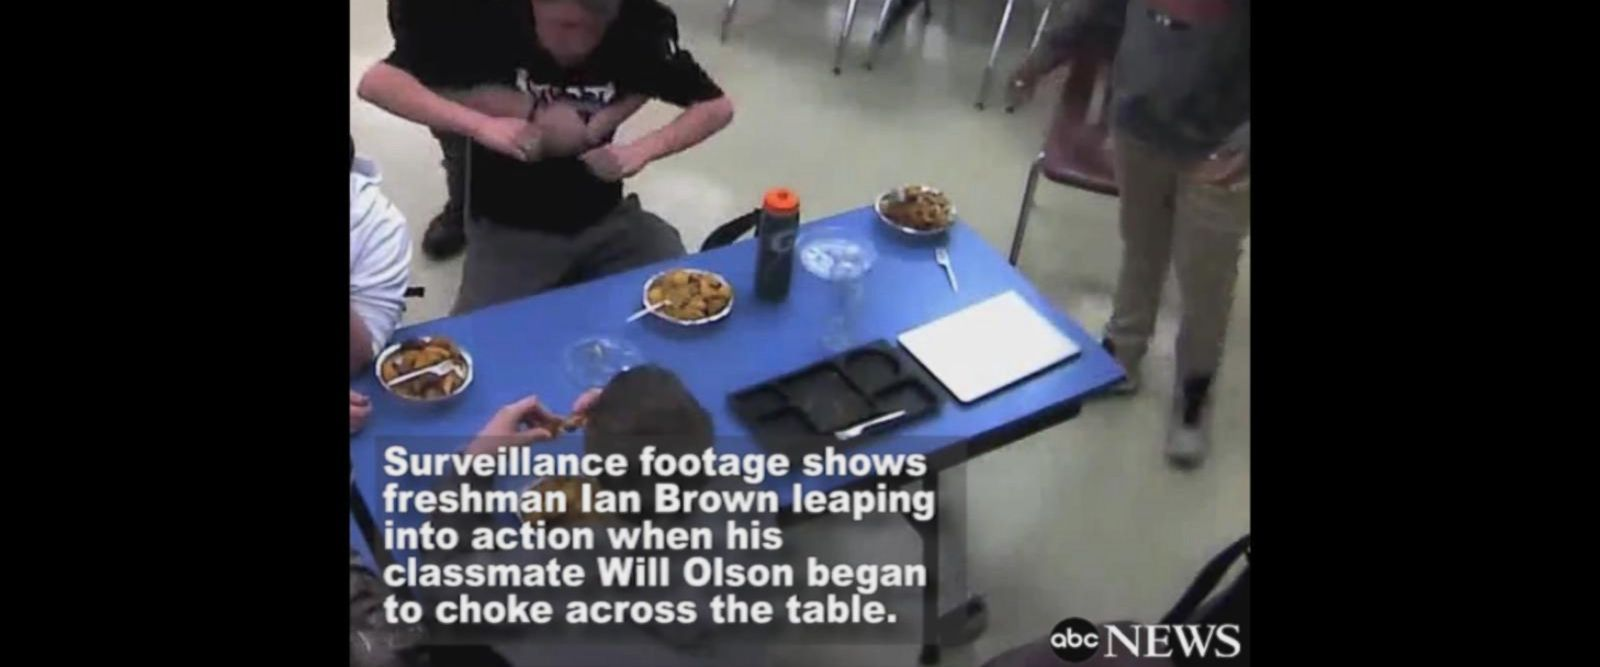 VIDEO: High school student performs Heilmich maneuver on classmate